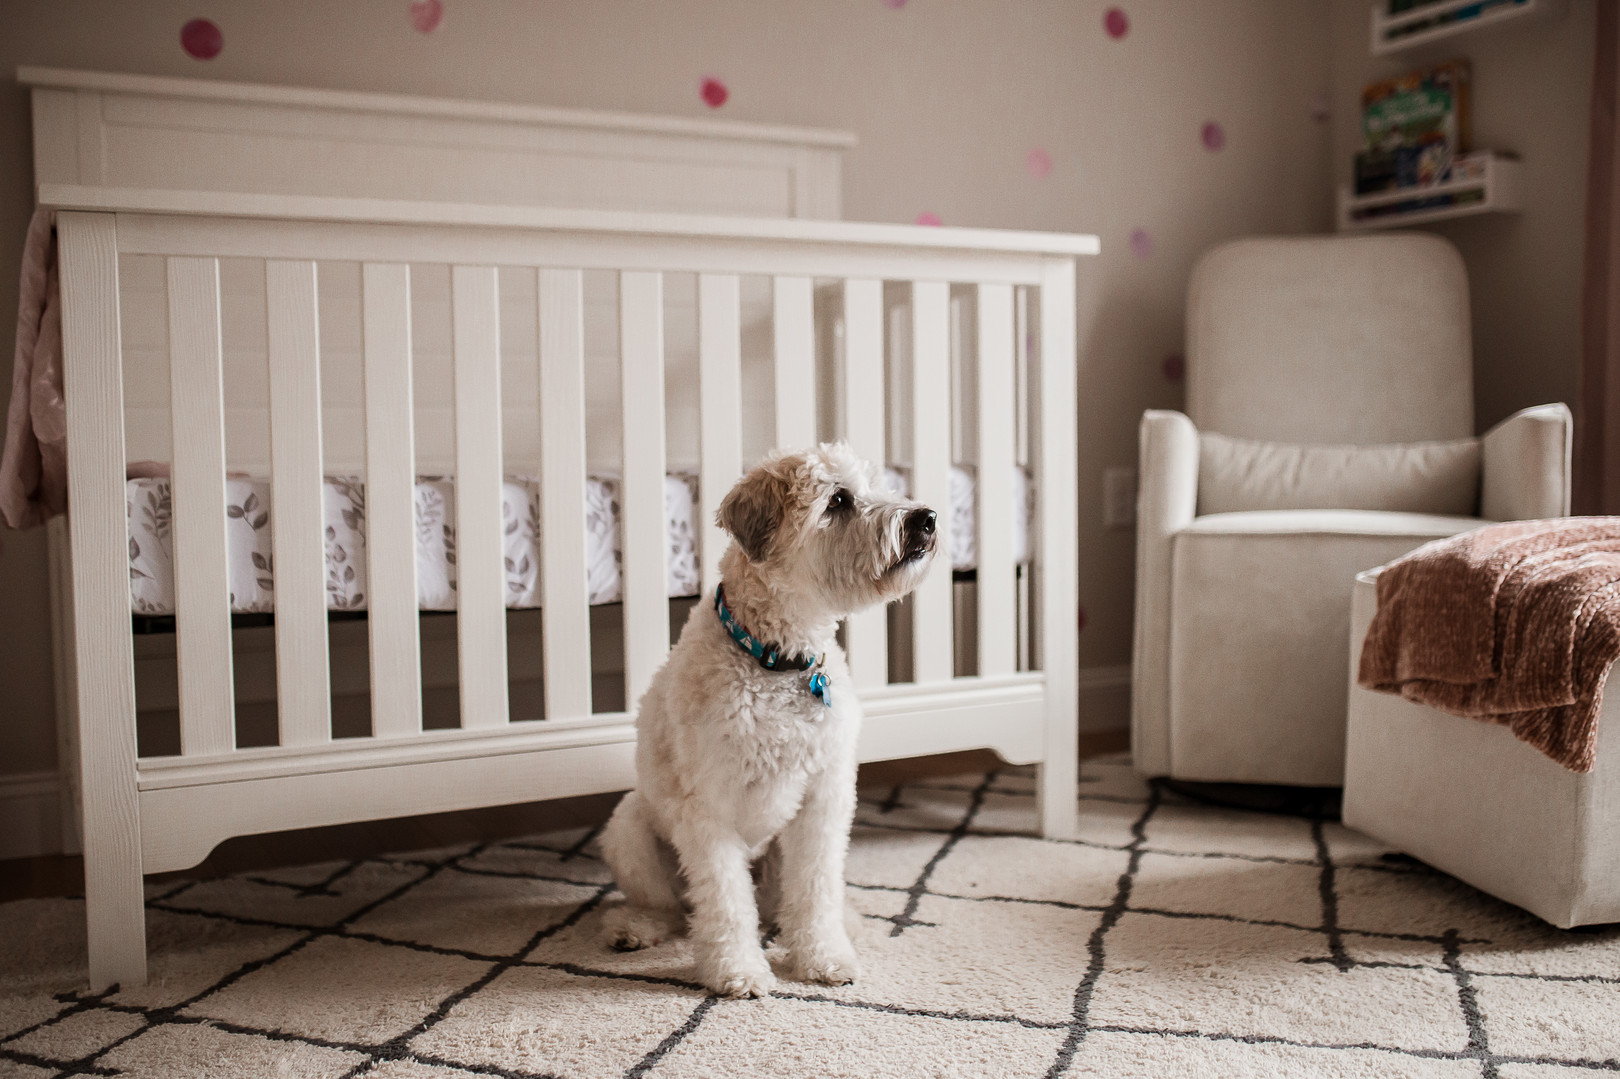 Dog guarding baby's crib